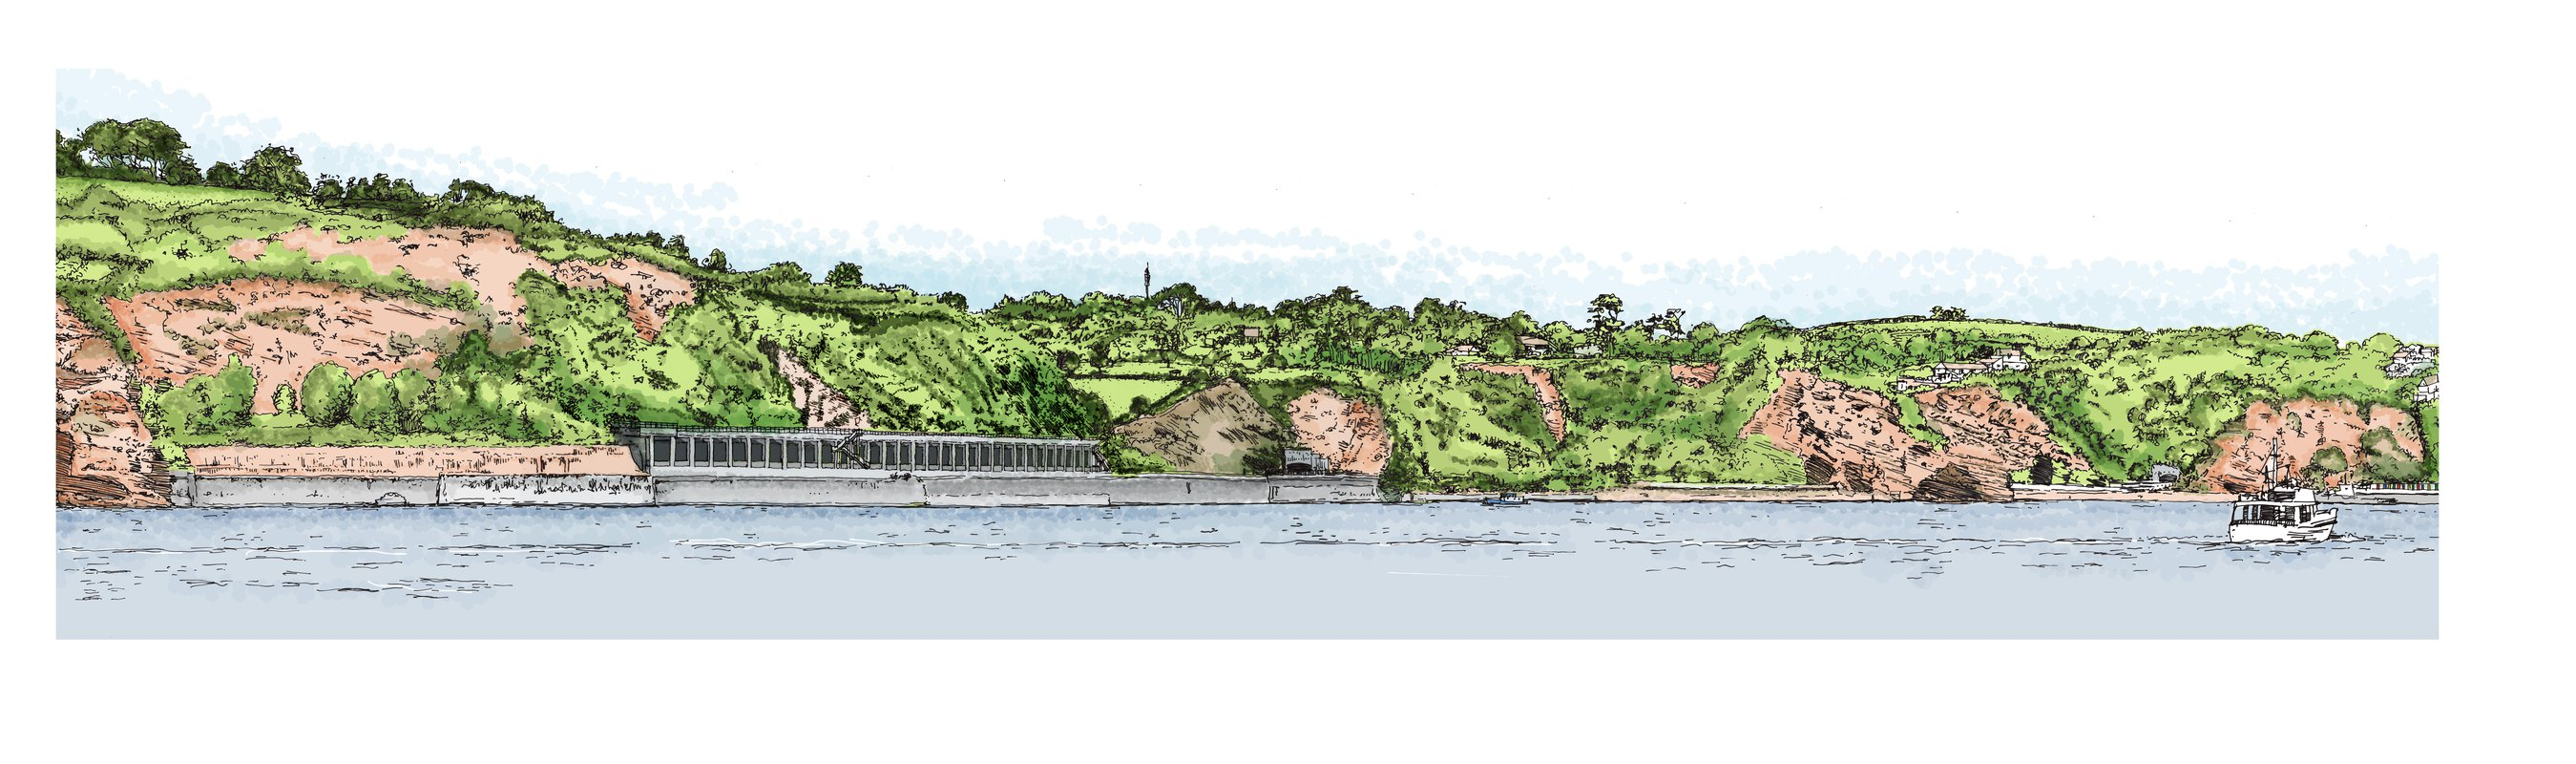 An illustration depicting the view of a hillside railway line from the sea